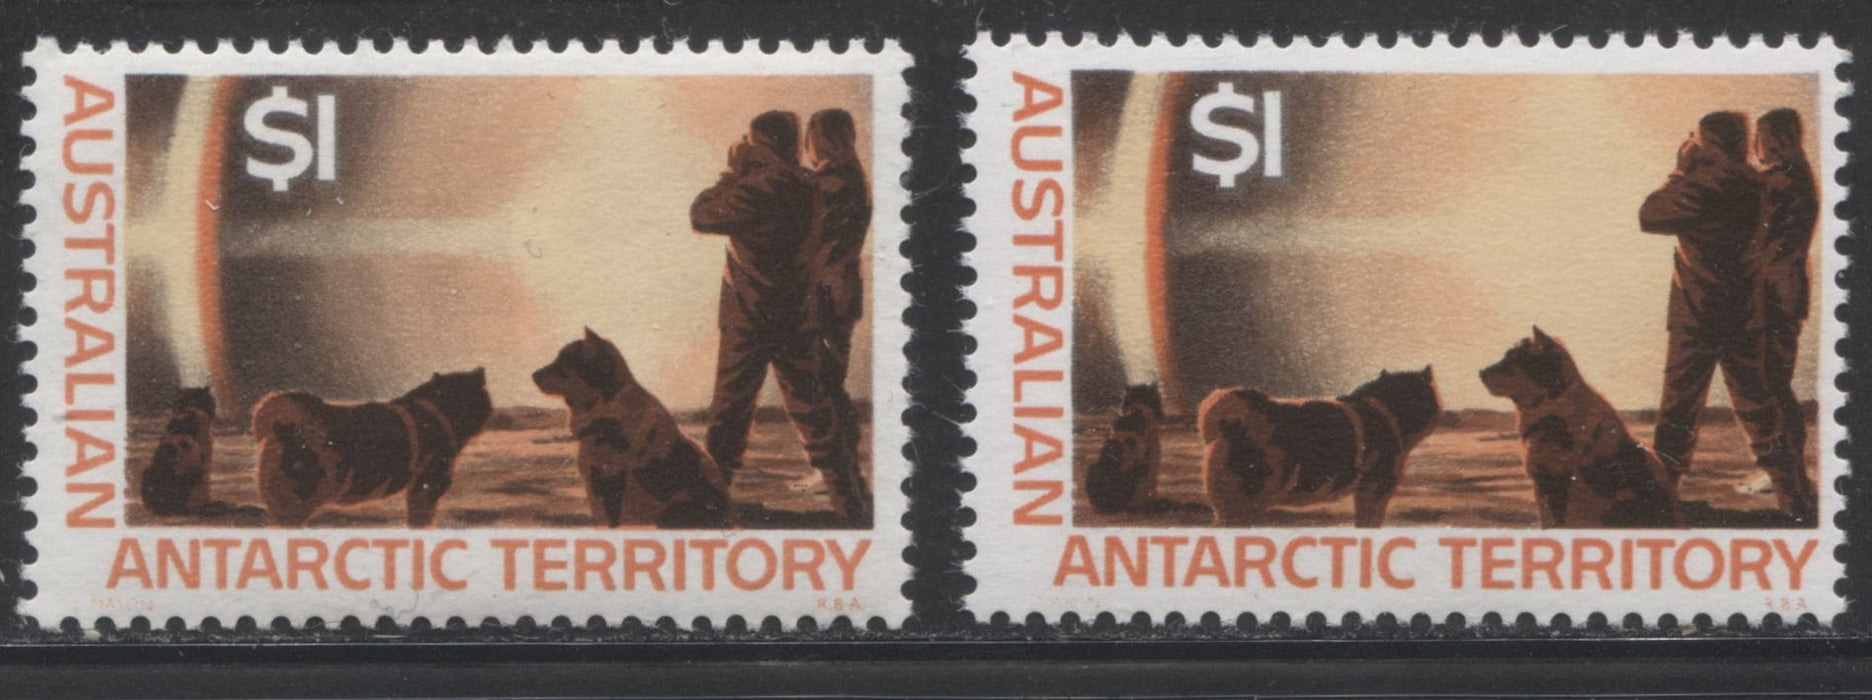 Australia Antarctic Territory #L18 $1 Paraheleon, 1966-1973 Decimal Definitive Issue, Two VFNH Examples, Each Printed on a Different Paper